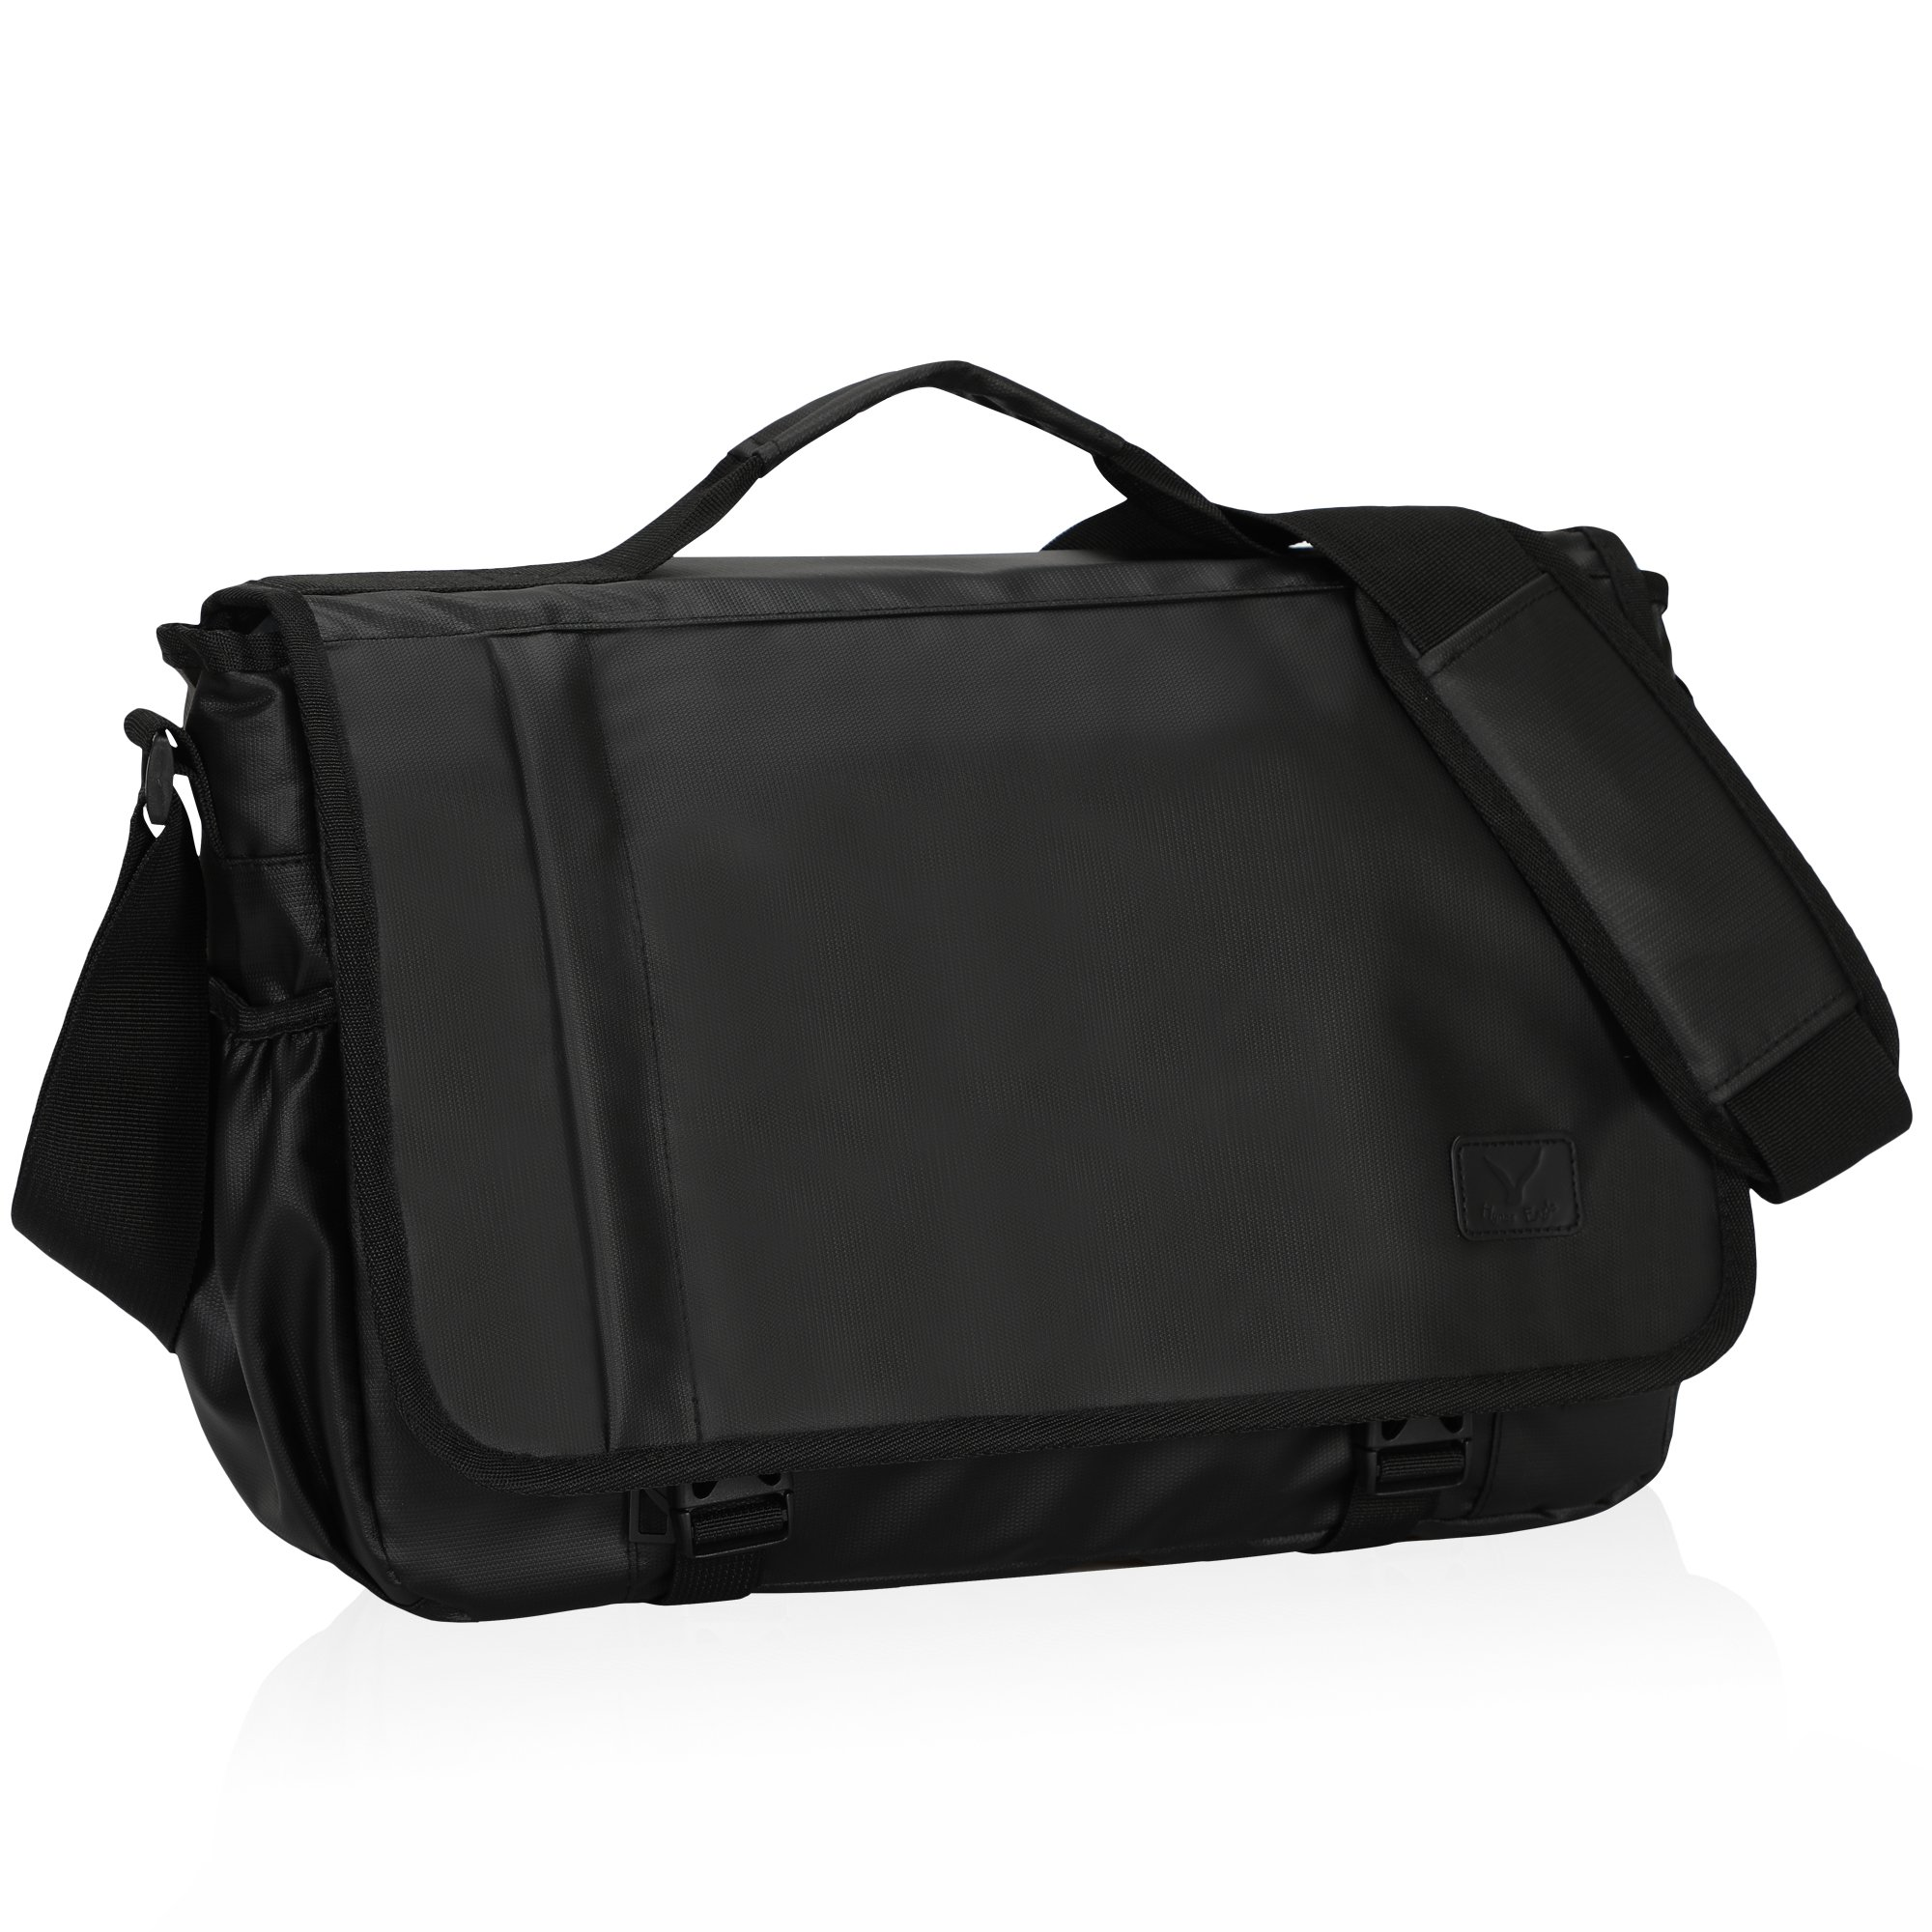 Hynes Eagle Laptop Messenger Bag for 15.6 inch with Top Handle Black